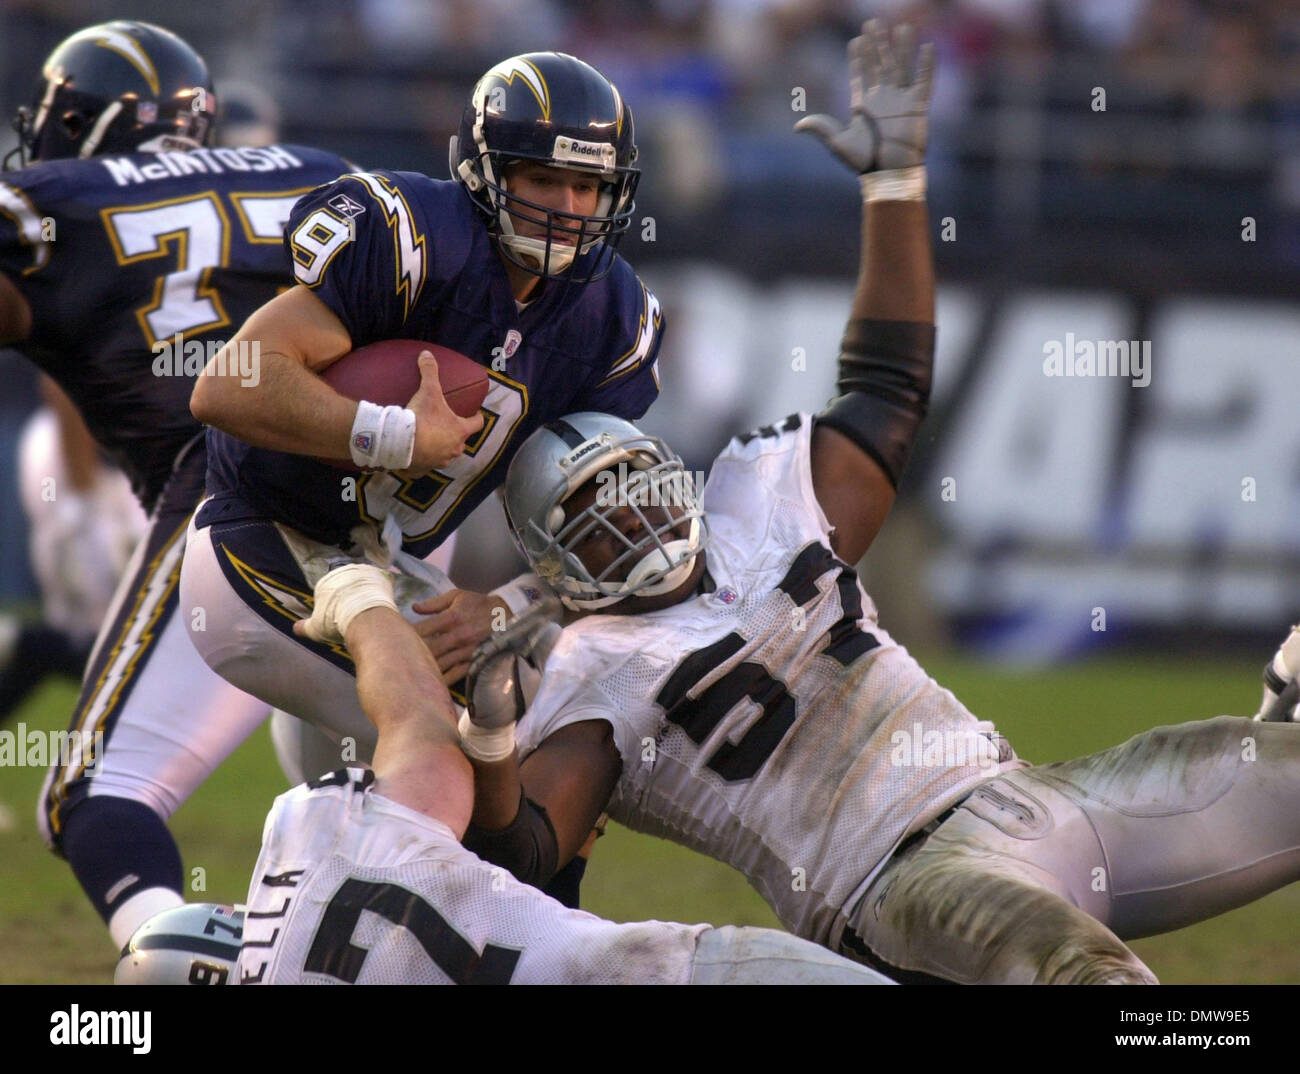 Dec 08, 2002; San Diego, CA, USA; Oakland Raiders' (bottom) John Parrella, #97, and (right) Rod Coleman, #57, sack San Diego Chargers' quarterback Drew Brees, #9, in the 3rd quarter of their game on Sunday, December 8, 2002 at Qualcomm Stadium in San Diego, Calif. Oakland beat San Diego 27-7. - Stock Image